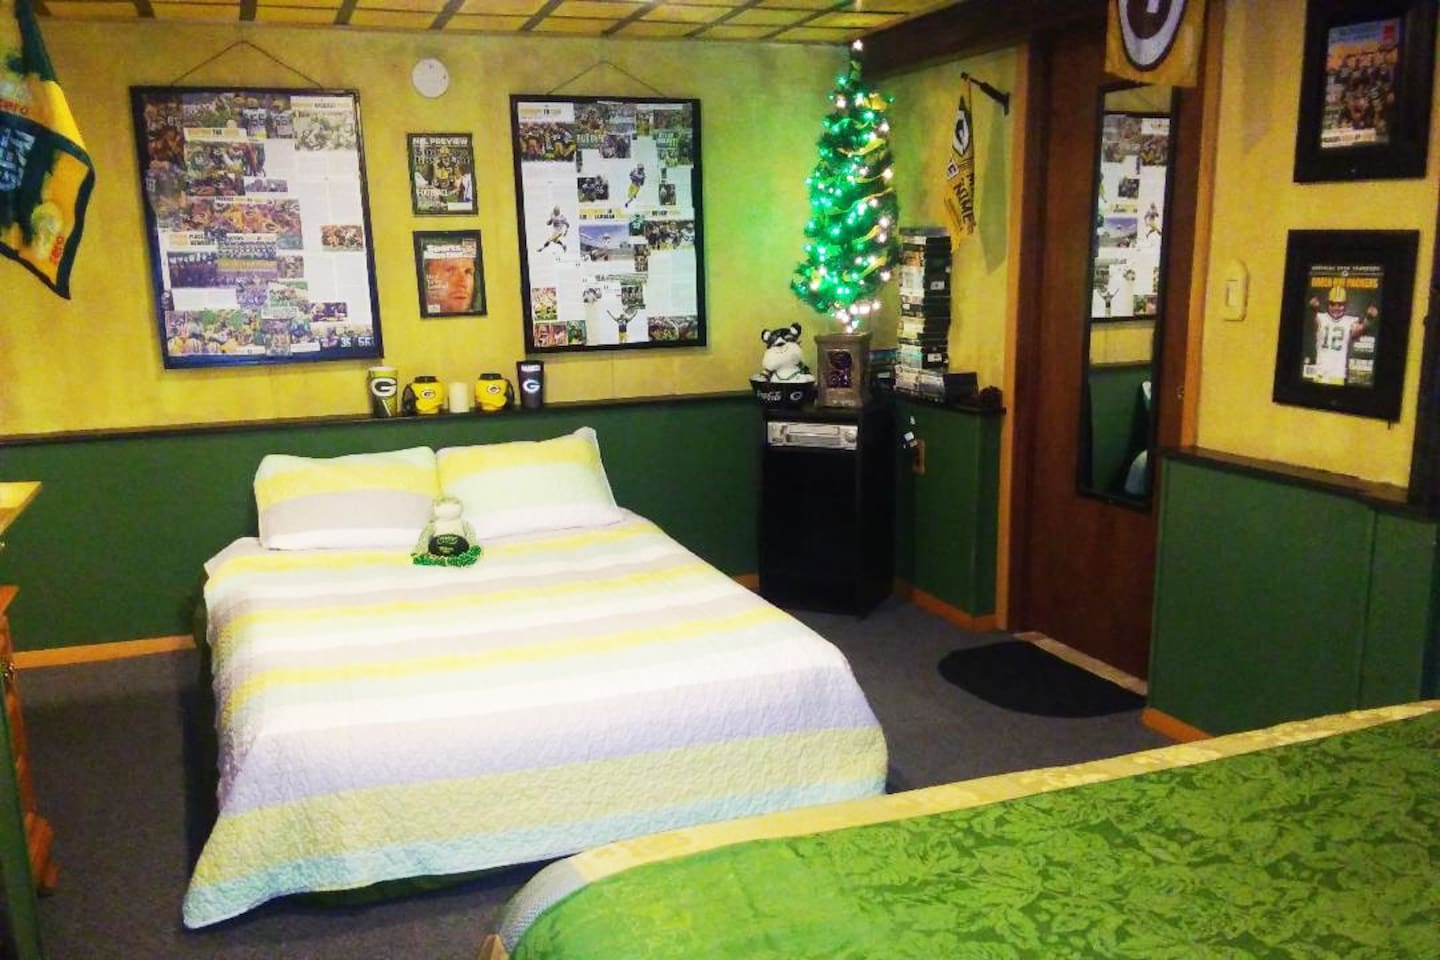 A little GreenNGold... (2ND BED SET UP UPON REQUEST)